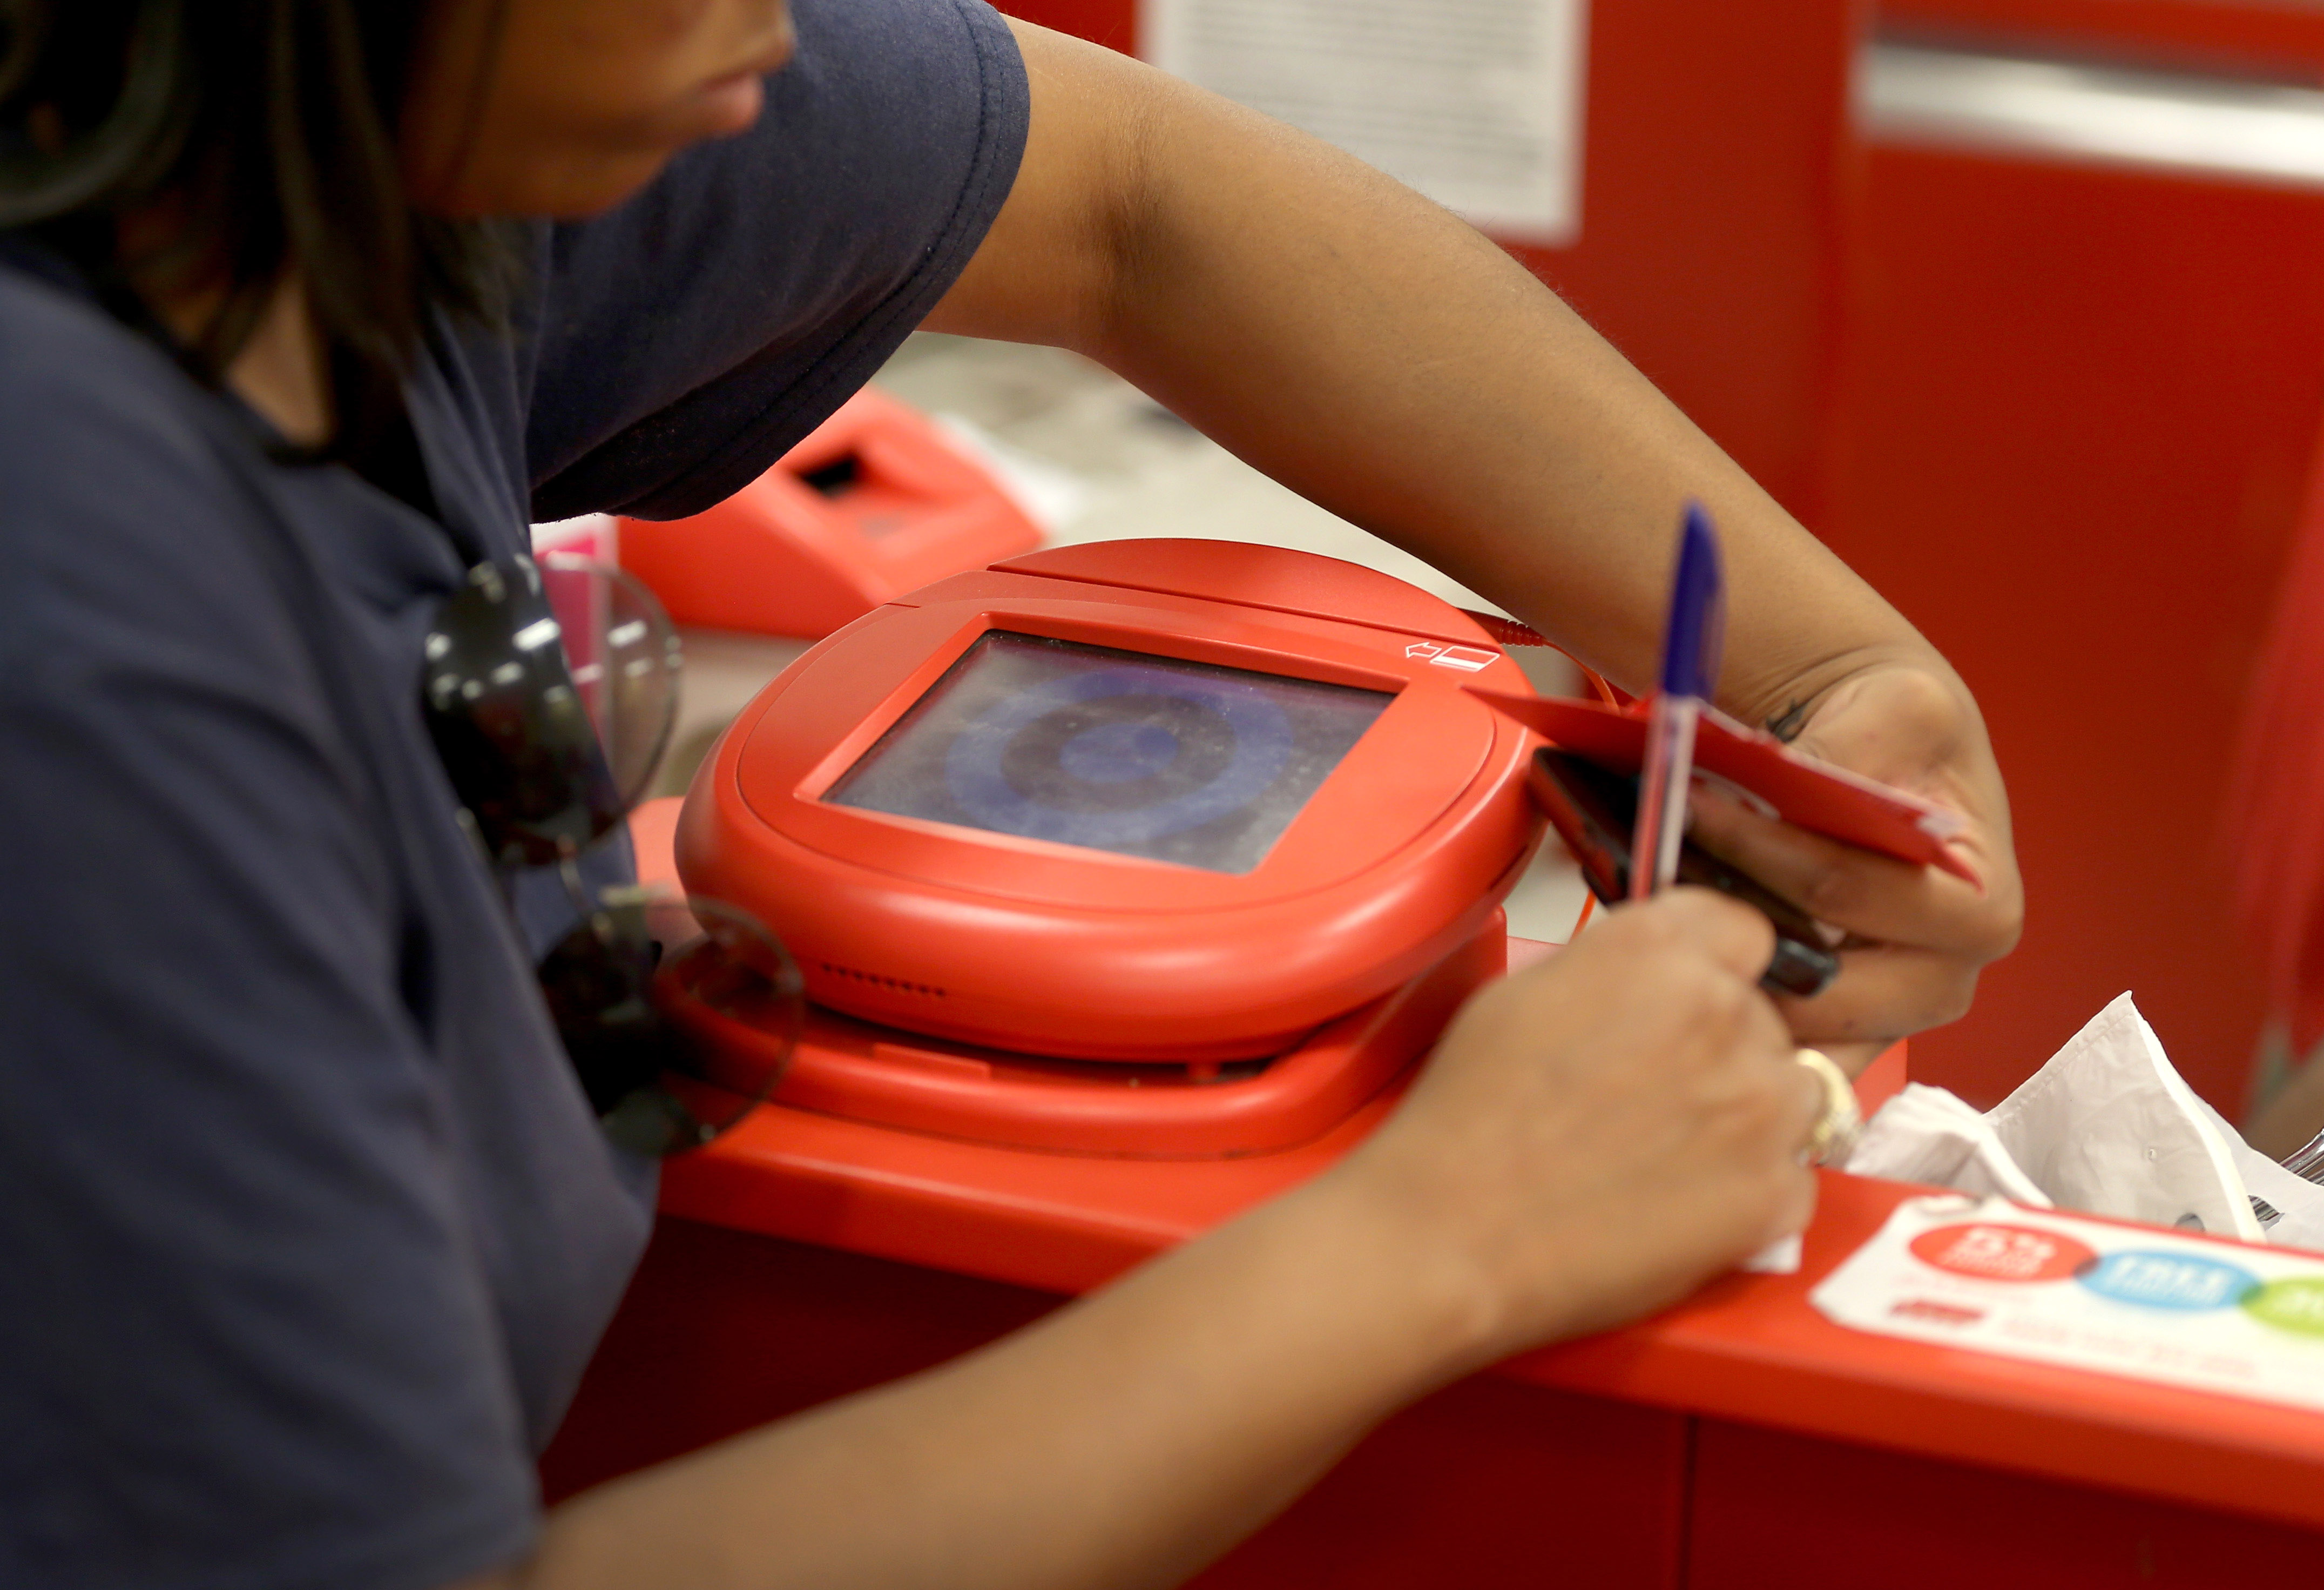 Target confirms debit card PIN info stolen in massive breach, but says data is 'safe and secure'